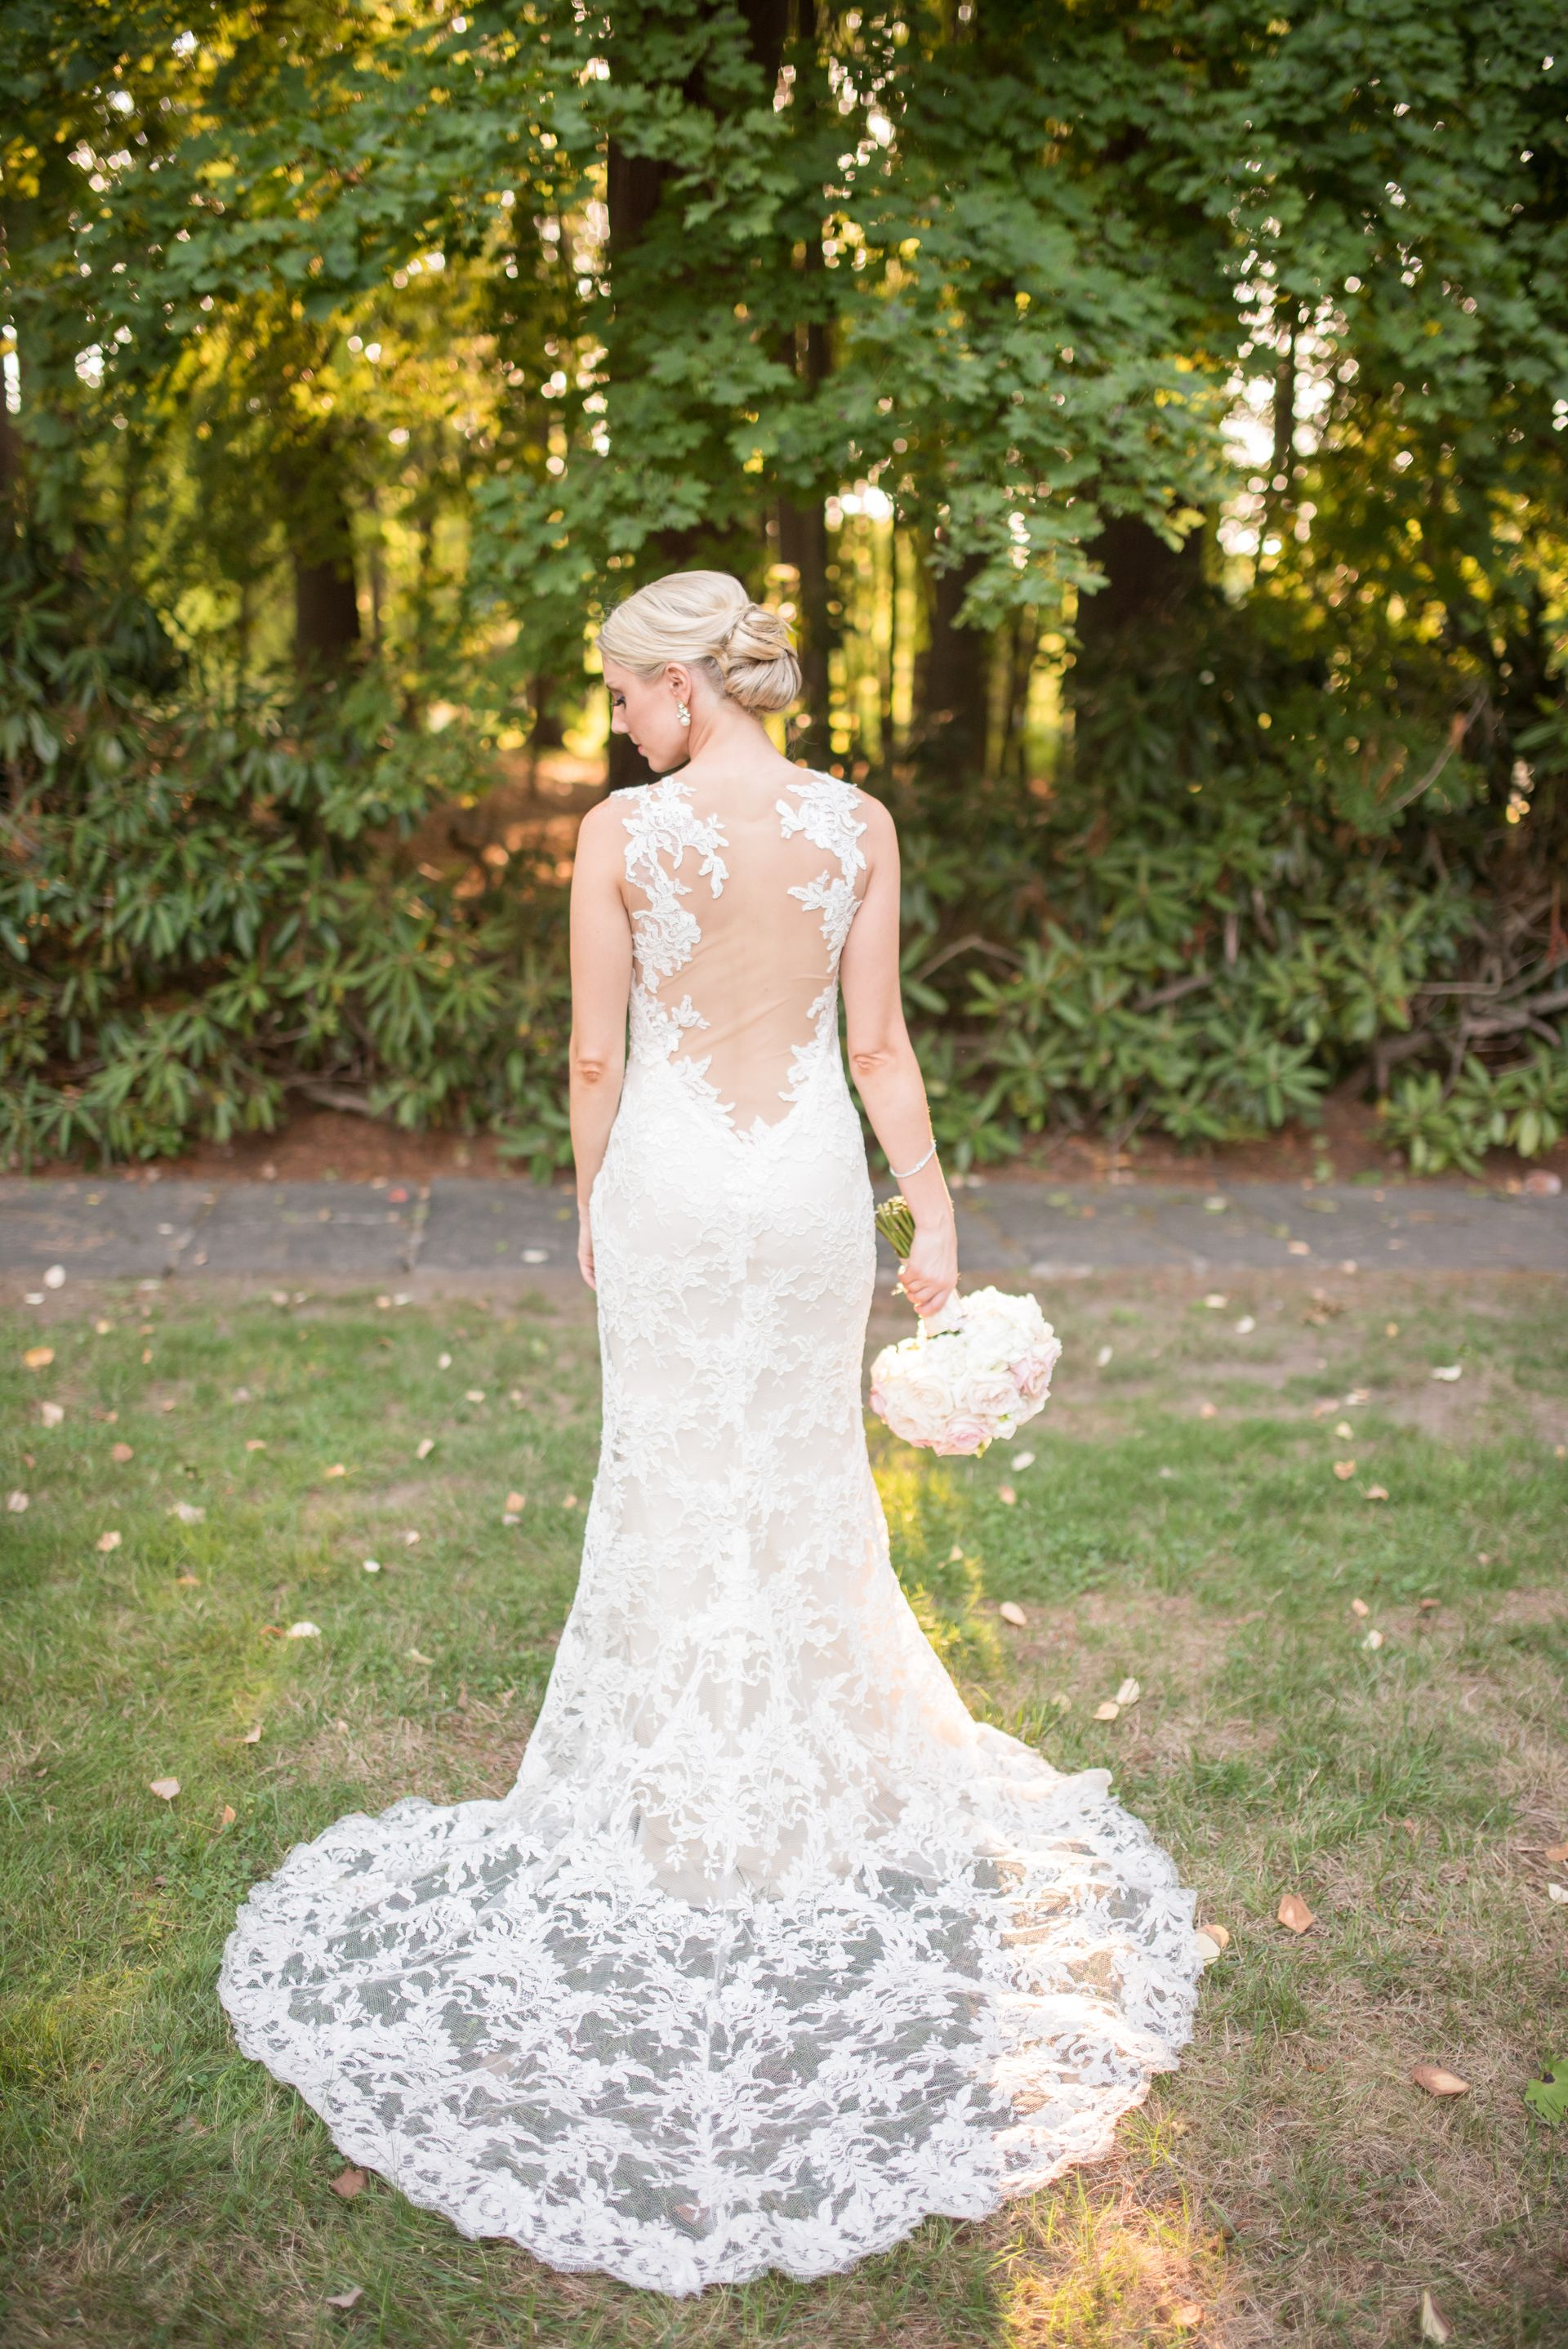 Romantic Lace Wedding Dress Illusion Back Bridal Gown Ideas Up